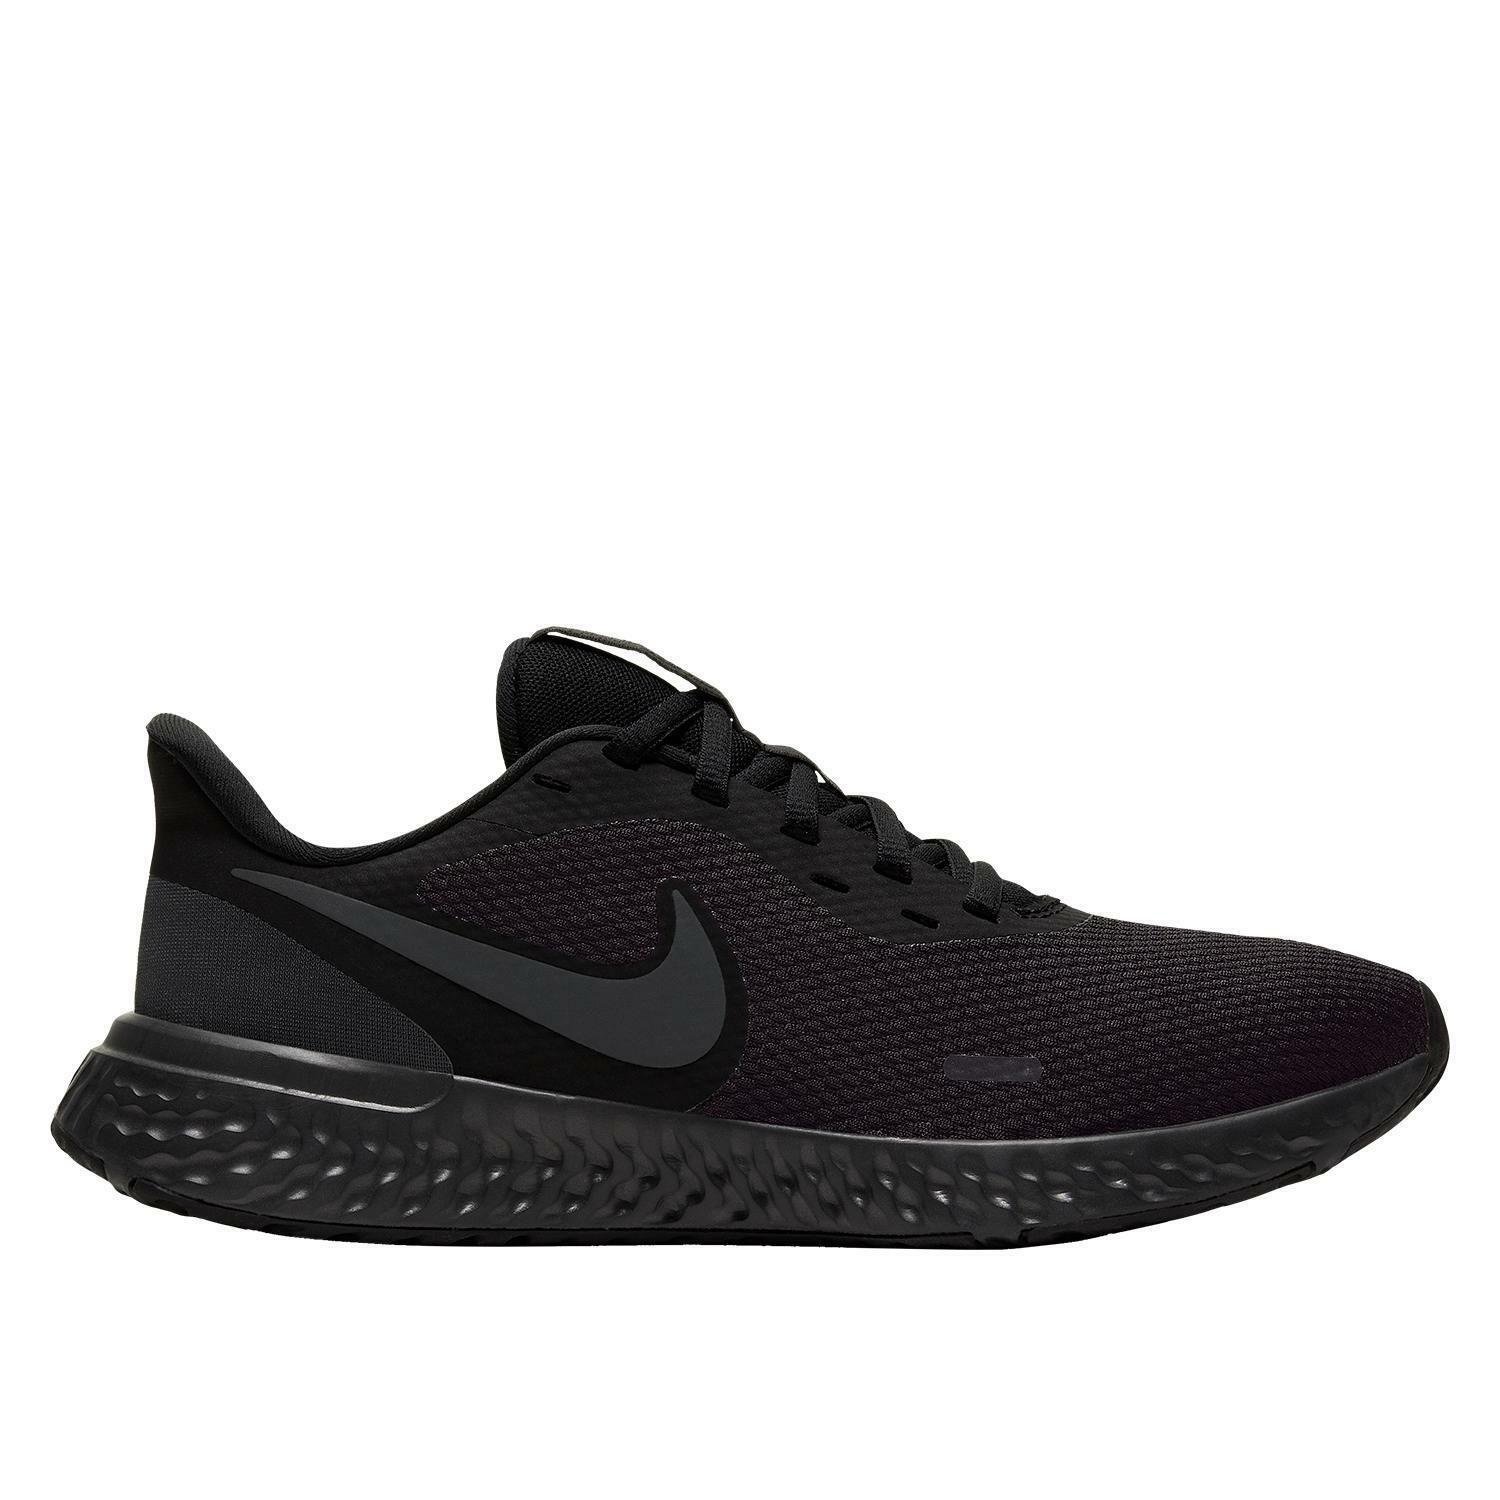 Nike revolution 5 running donna bq3207 001 nero